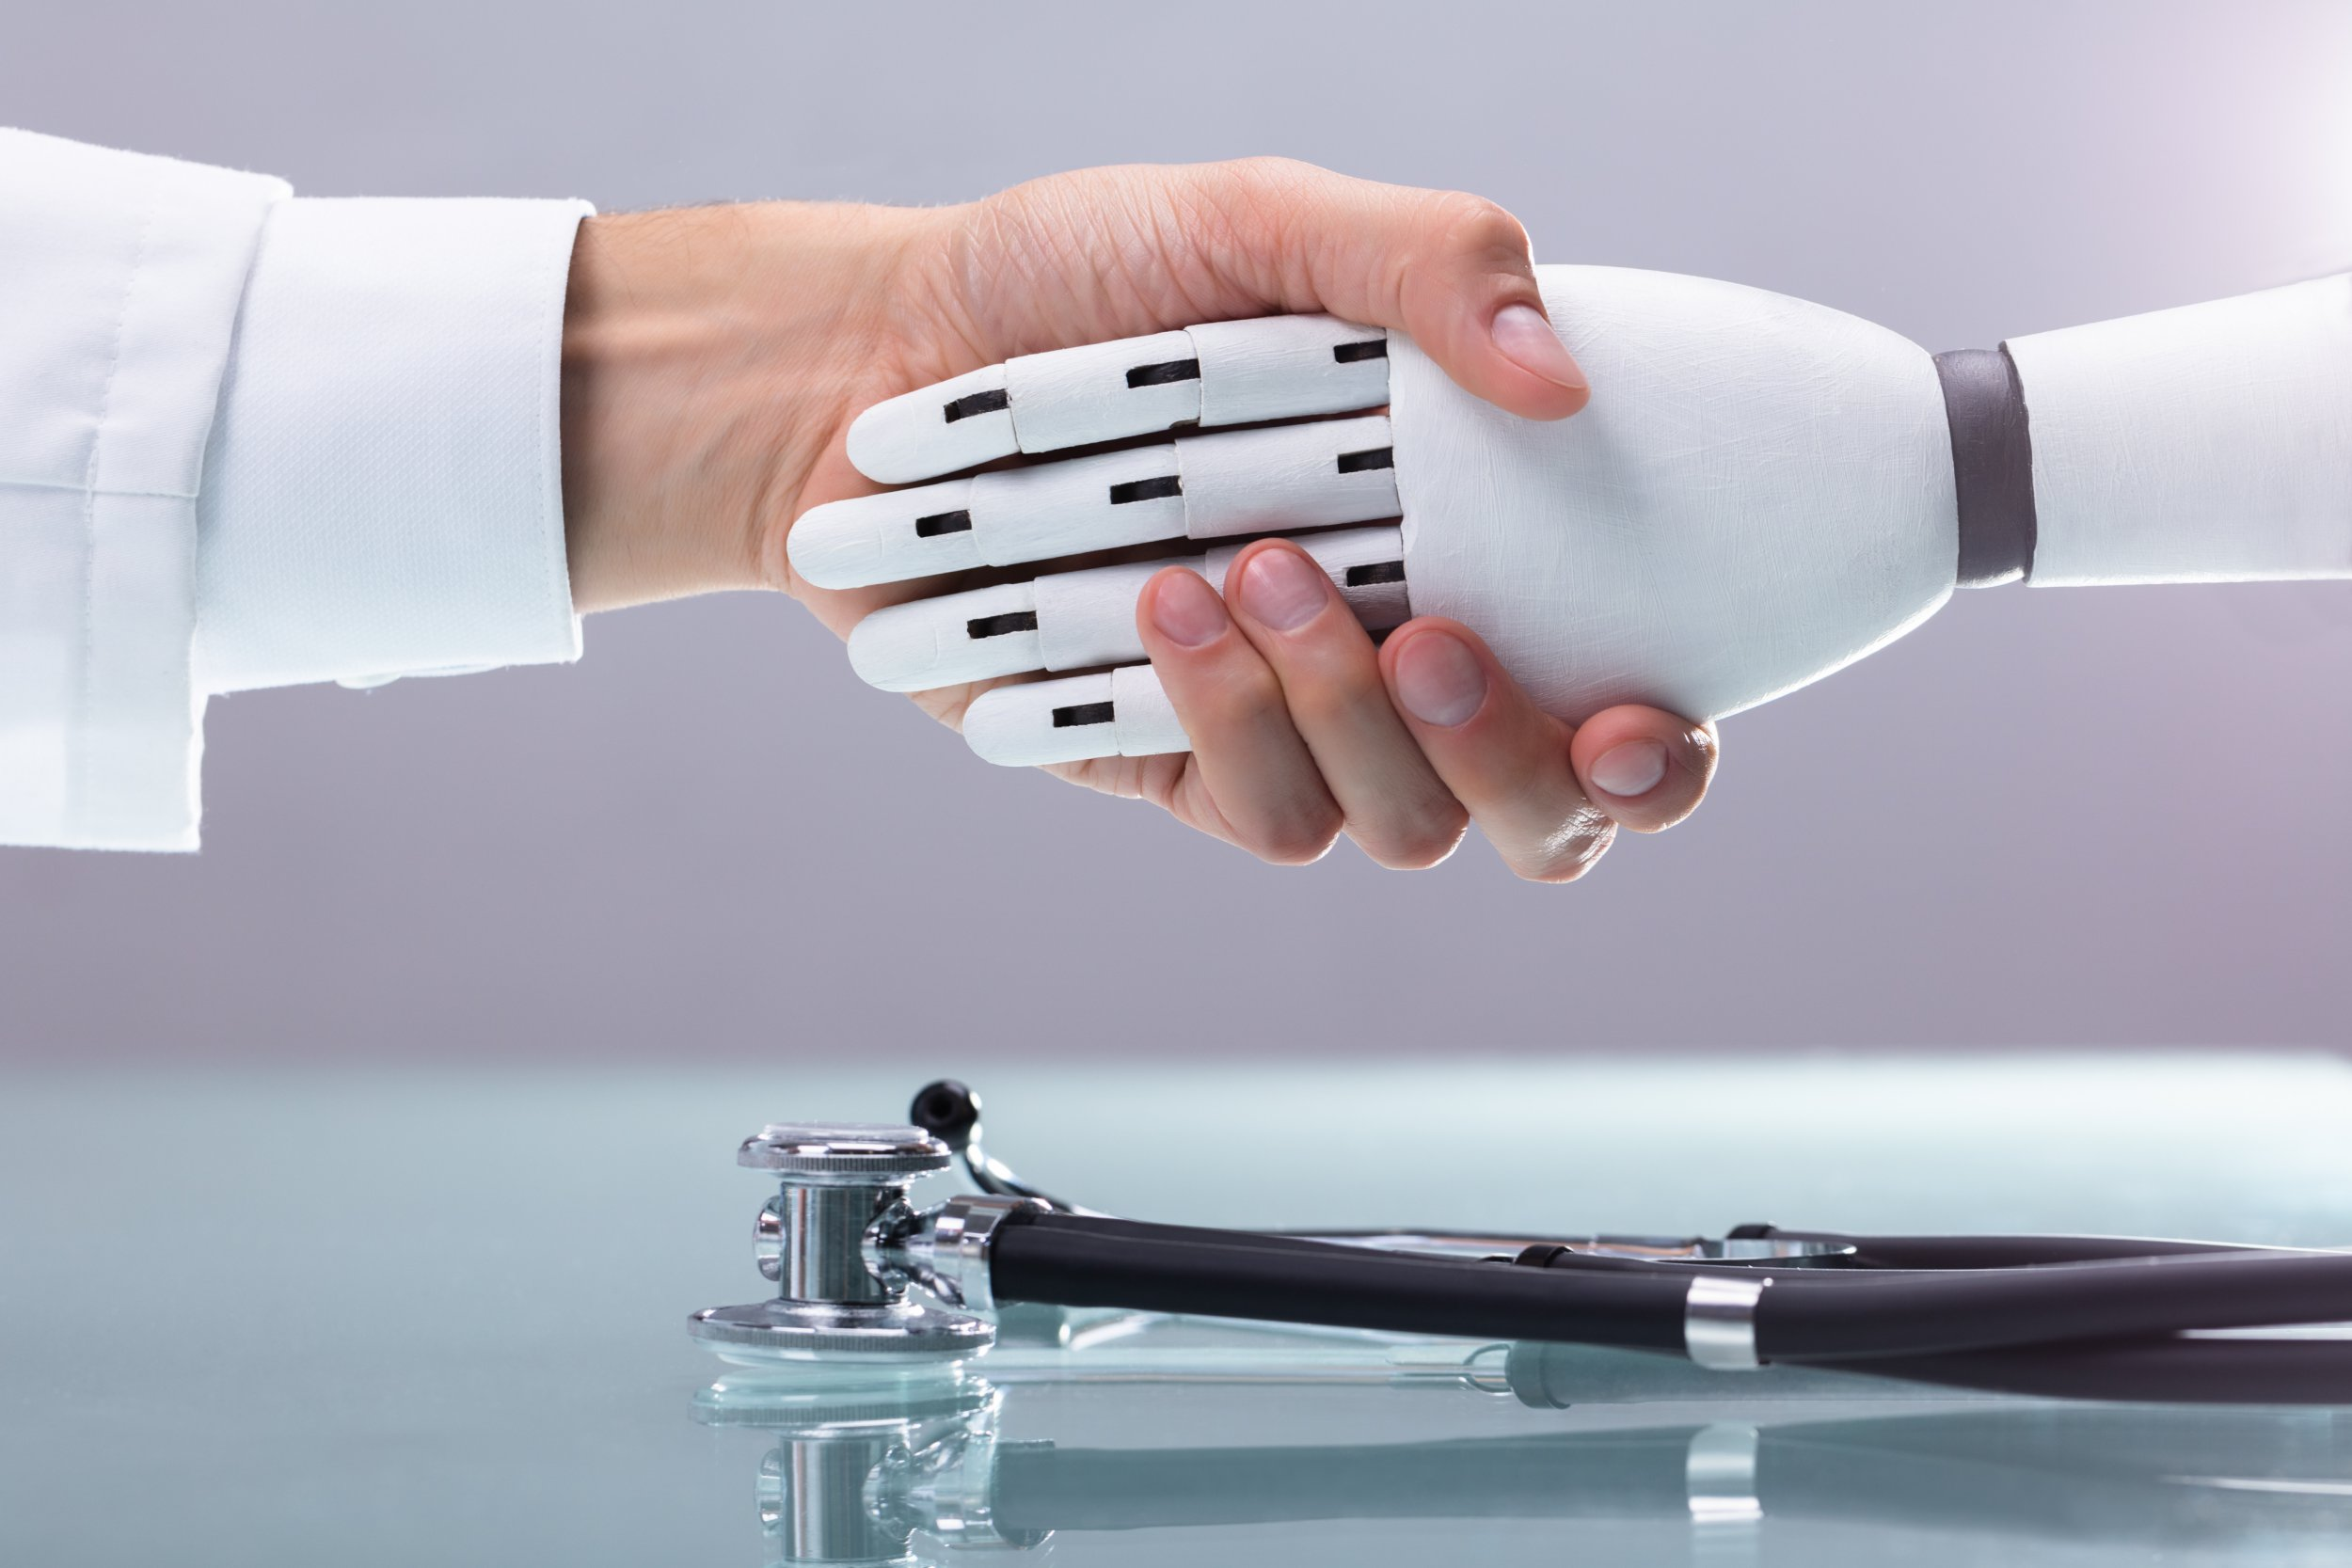 Doctor And Robot Shaking Hands Over Stethoscope